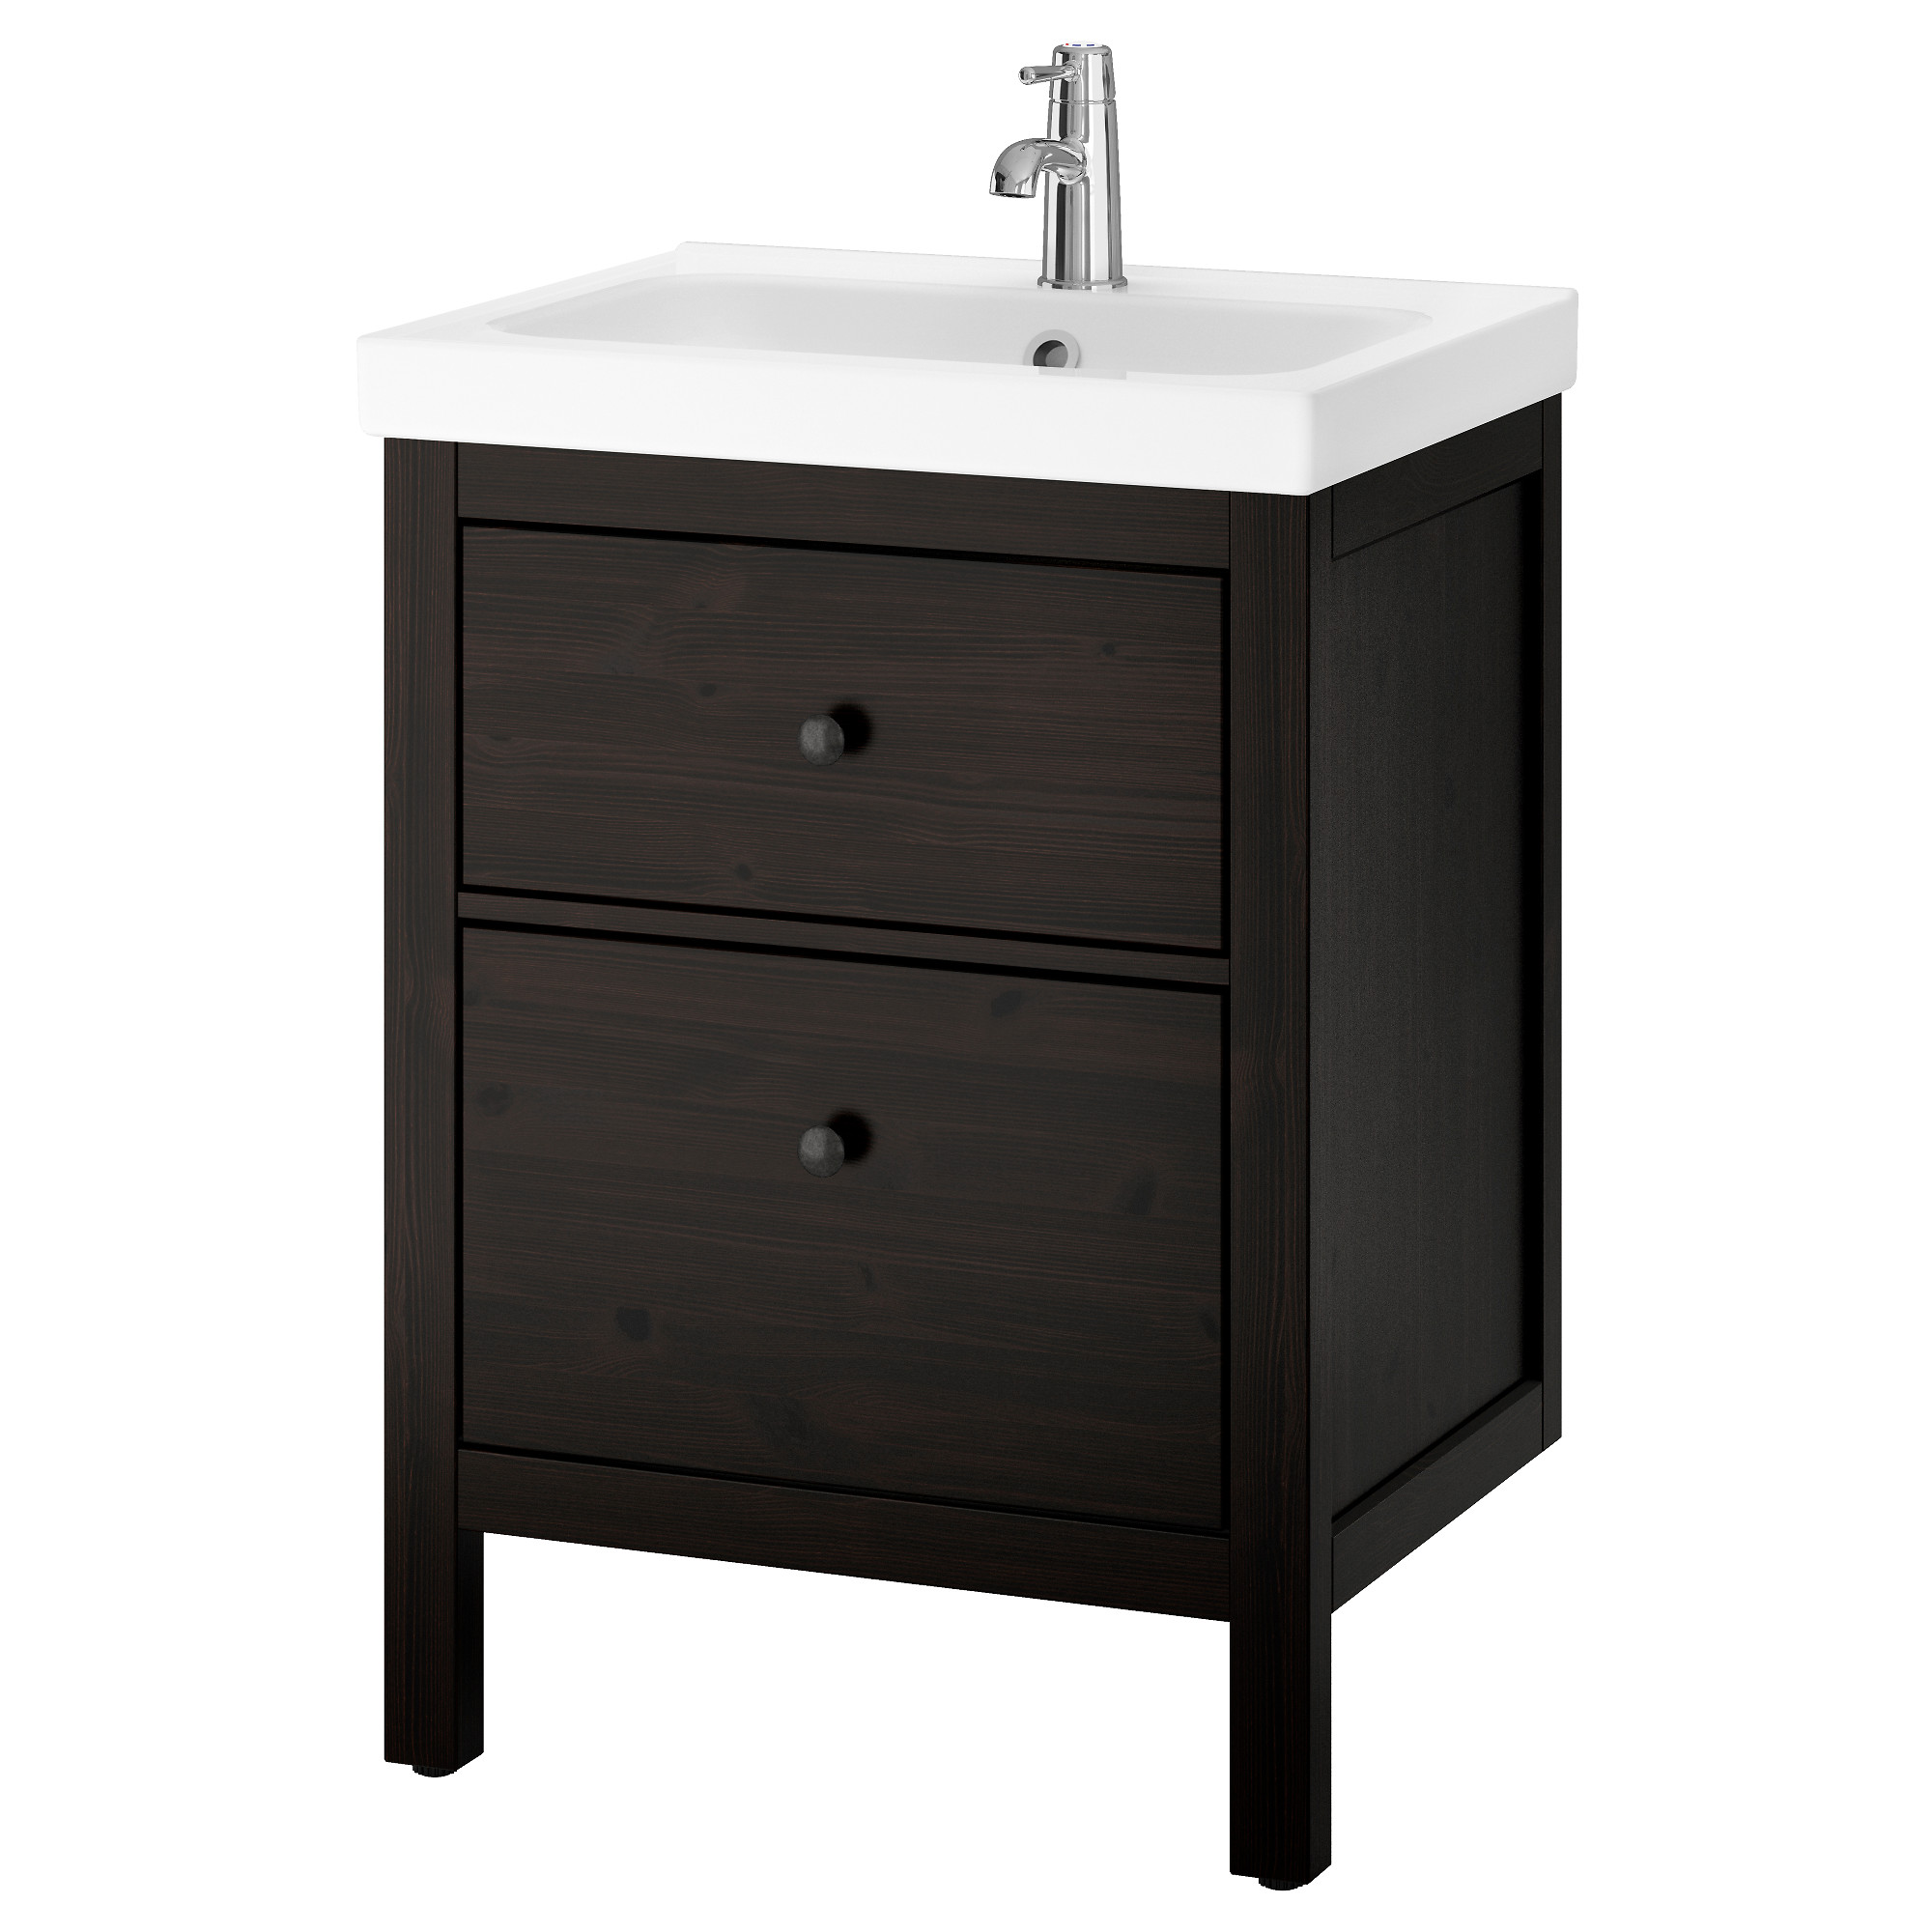 hemnes odensvik sink cabinet with 2 drawers black brown stain width 24